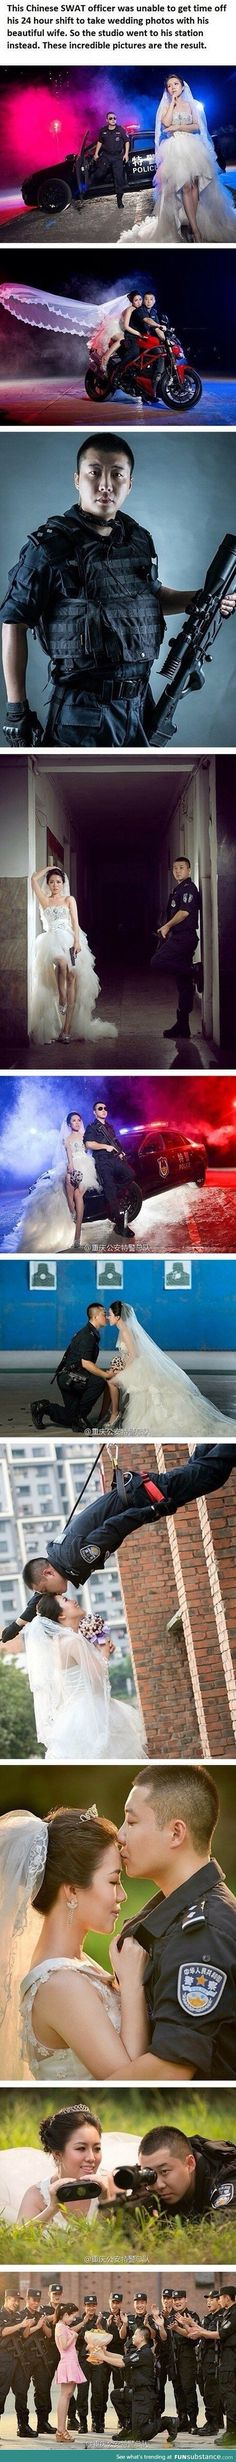 A police marriage photo shoot This Chinese SWAT officer was unable to get time off his 24 hour shift to take wedding photos with his wife. So the photographer went to the station instead and these were the photos taken!